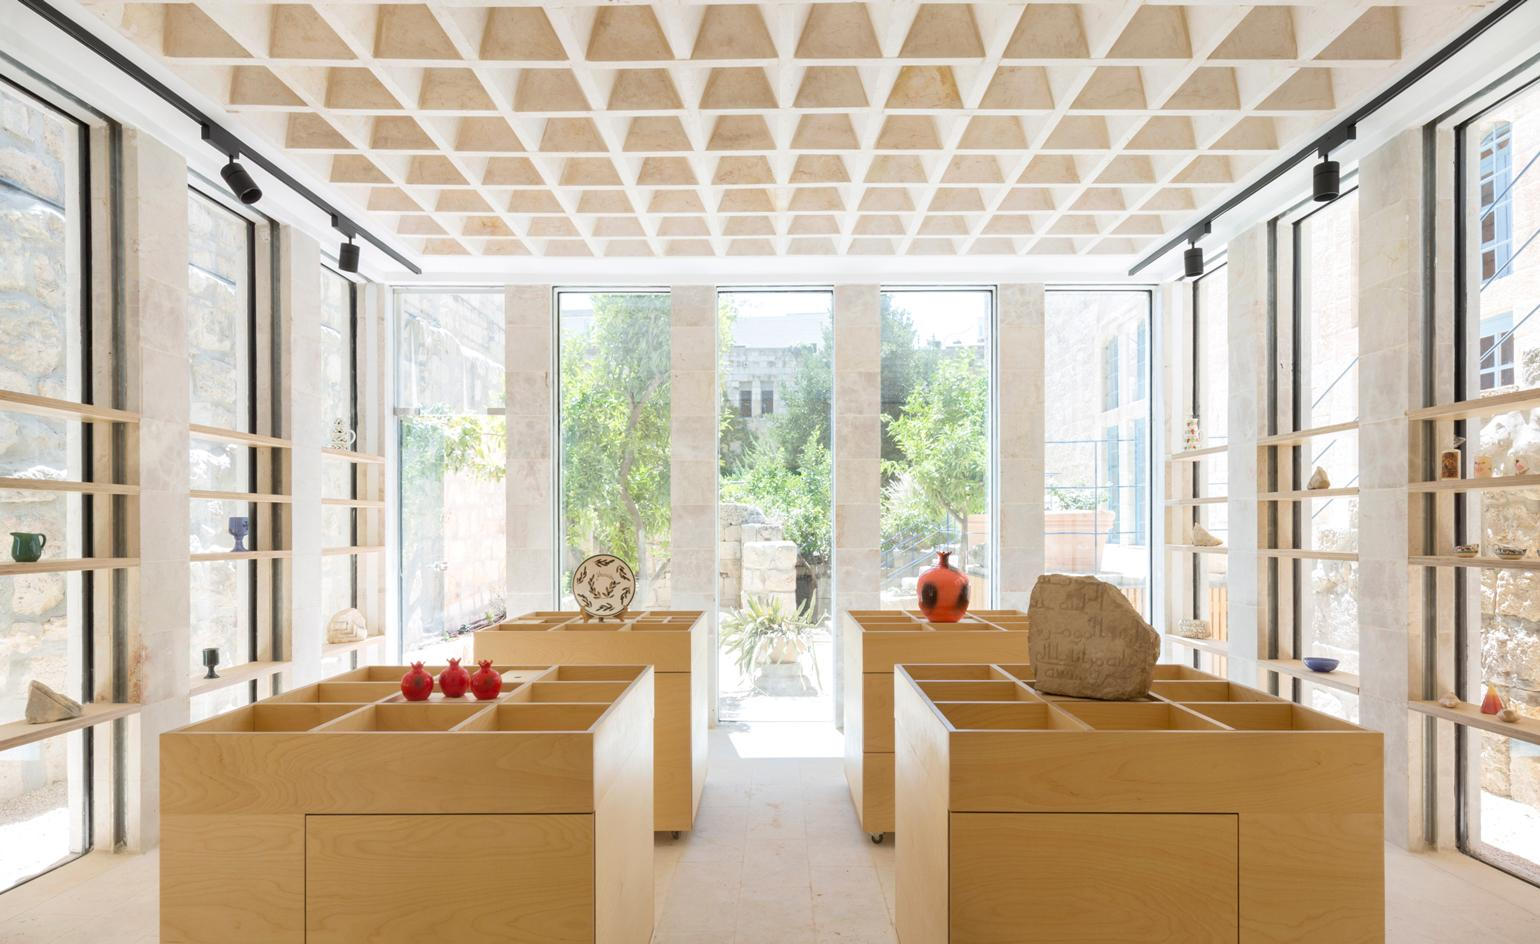 A 12th century crypt shop design is inspired by Jerusalem's monastic architecture